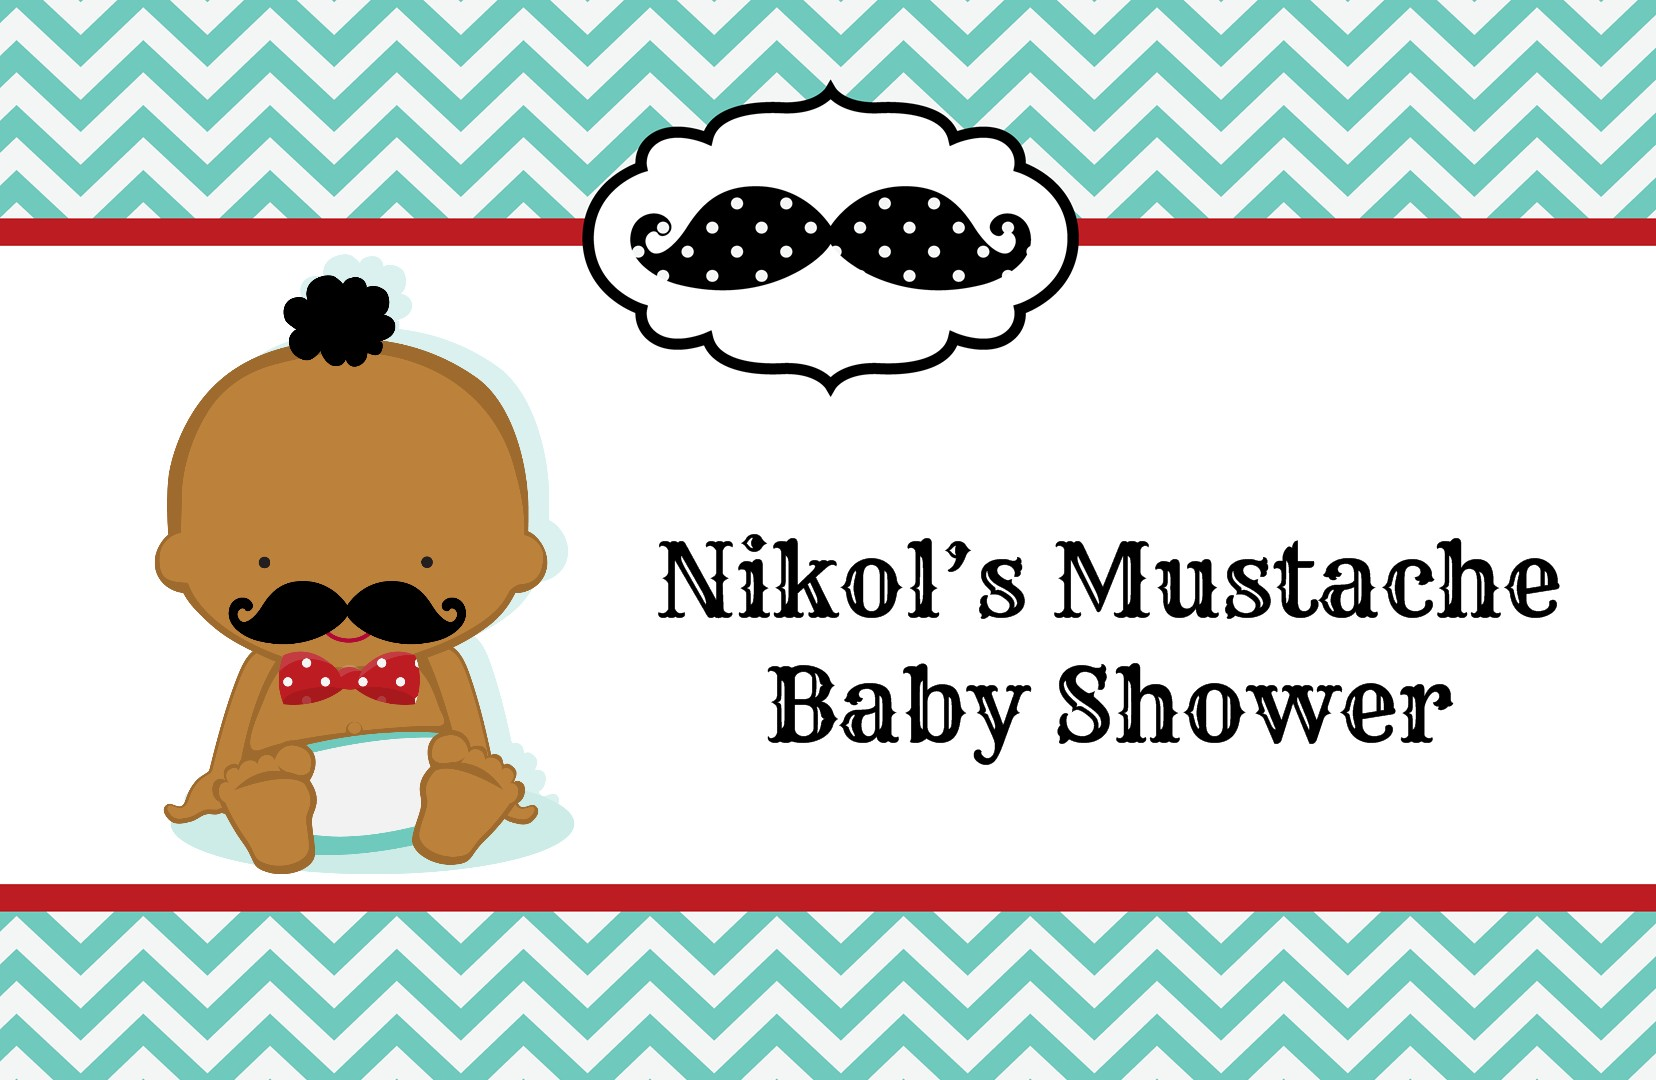 Little Man Mustache - Personalized Baby Shower Placemats Caucasian